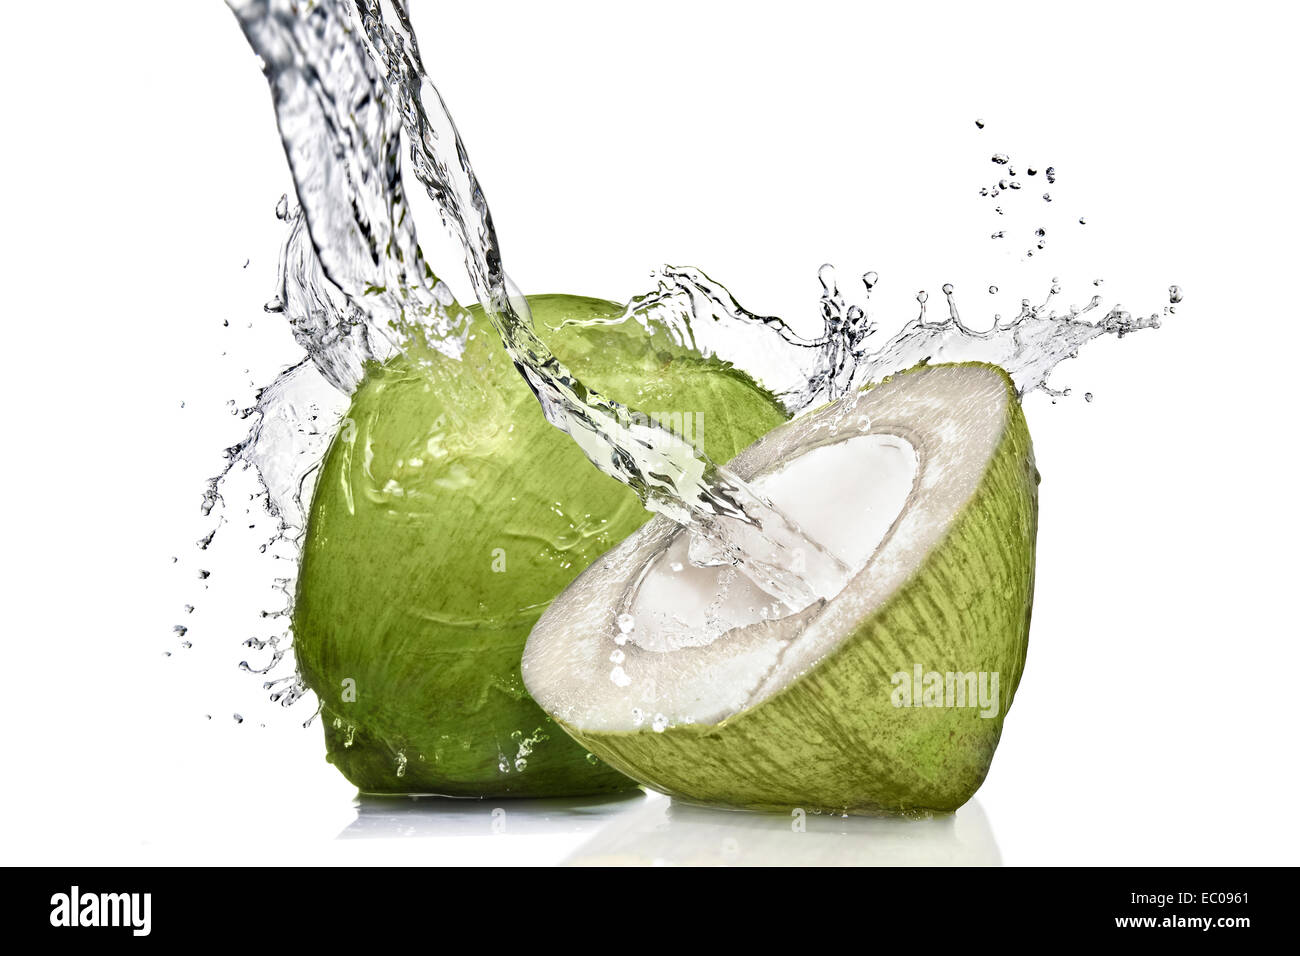 Splash Of Water On Green Coconut Isolated White